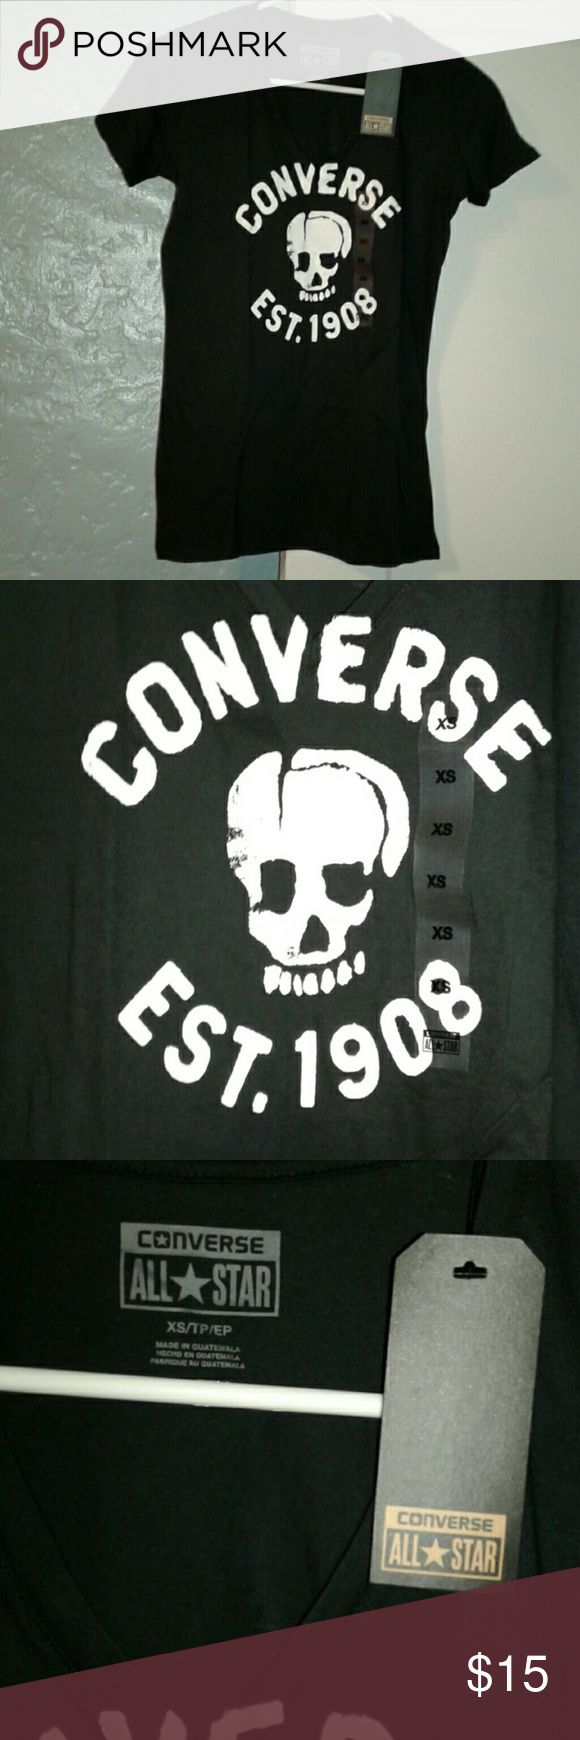 NWT ladies converse tee NWT black size xsmall ladies converse tee. Converse Tops